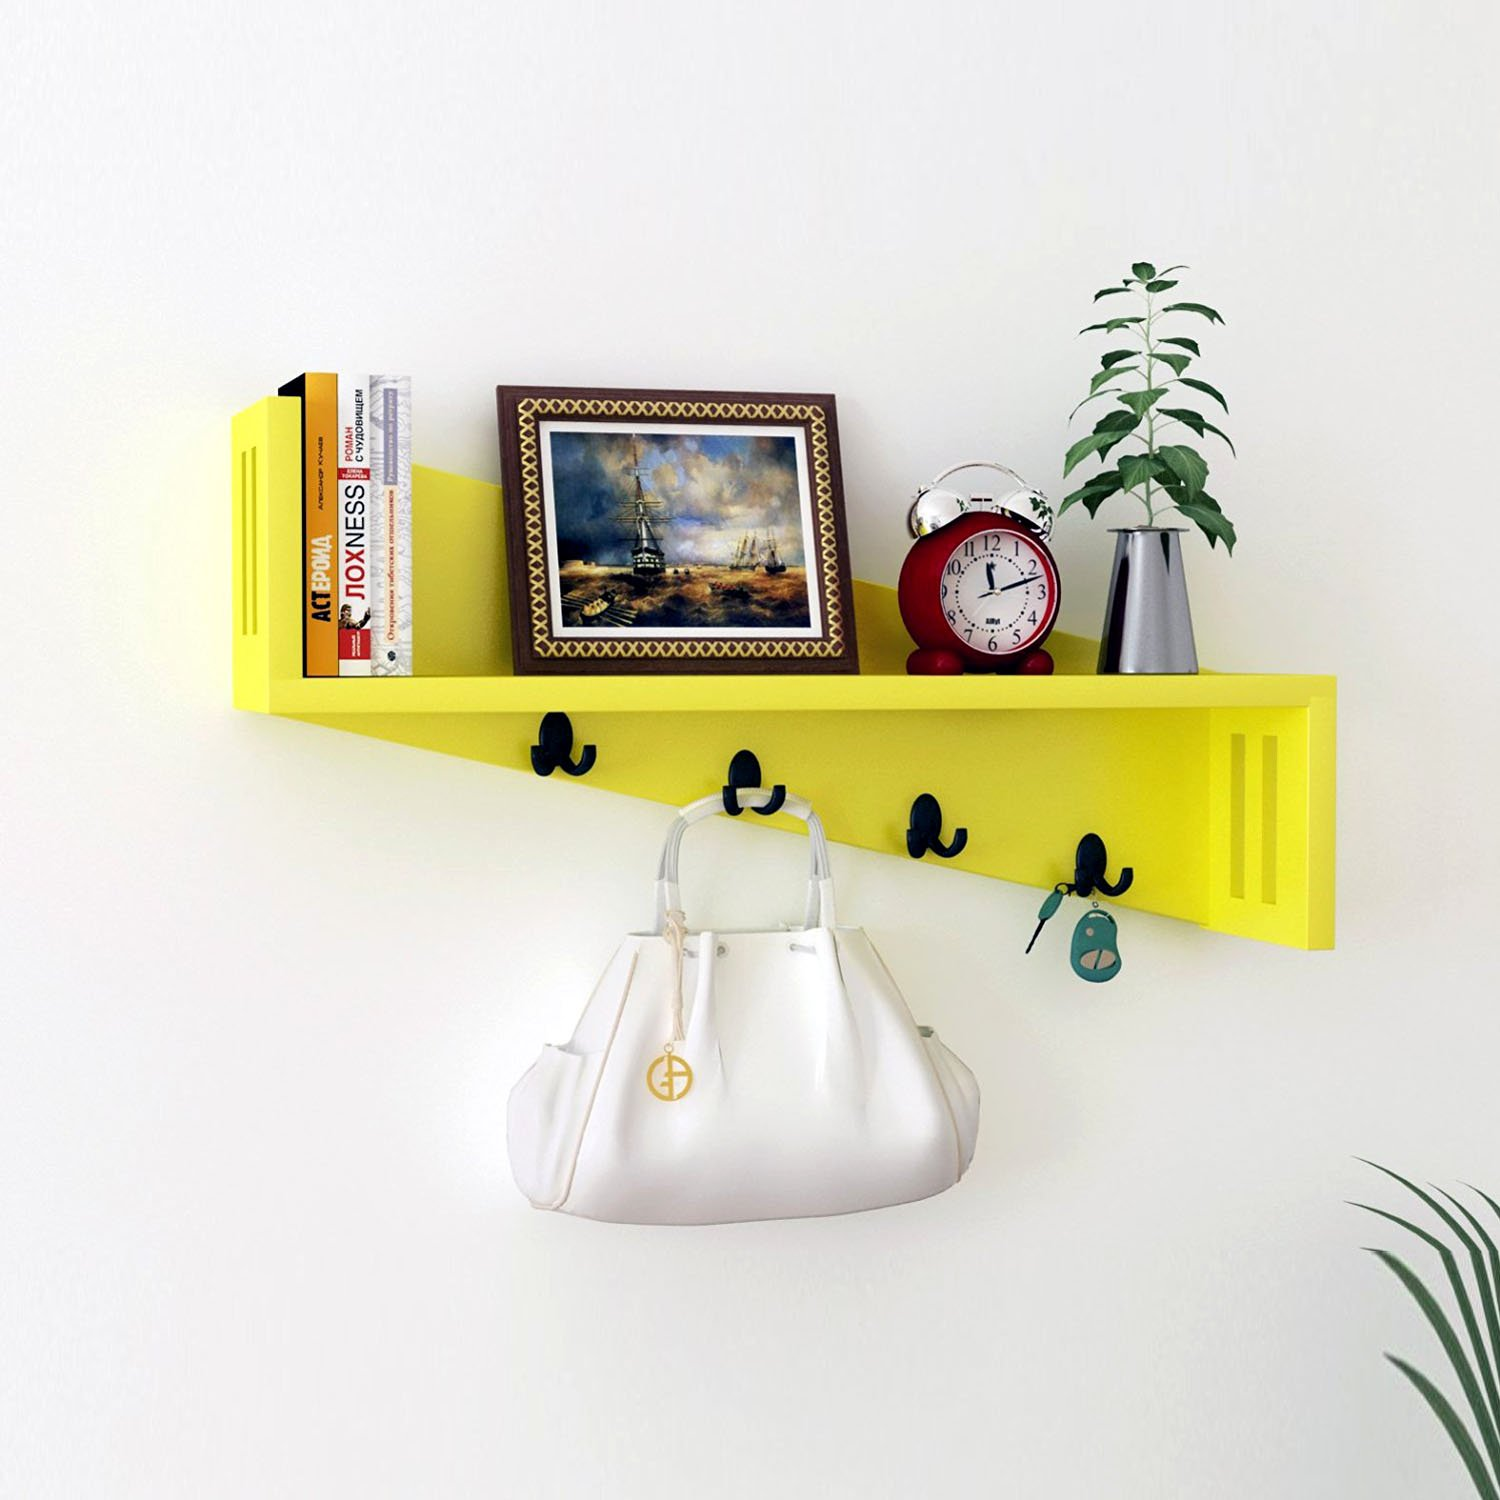 Quirkstop-Artesia Wooden Wall Shelf